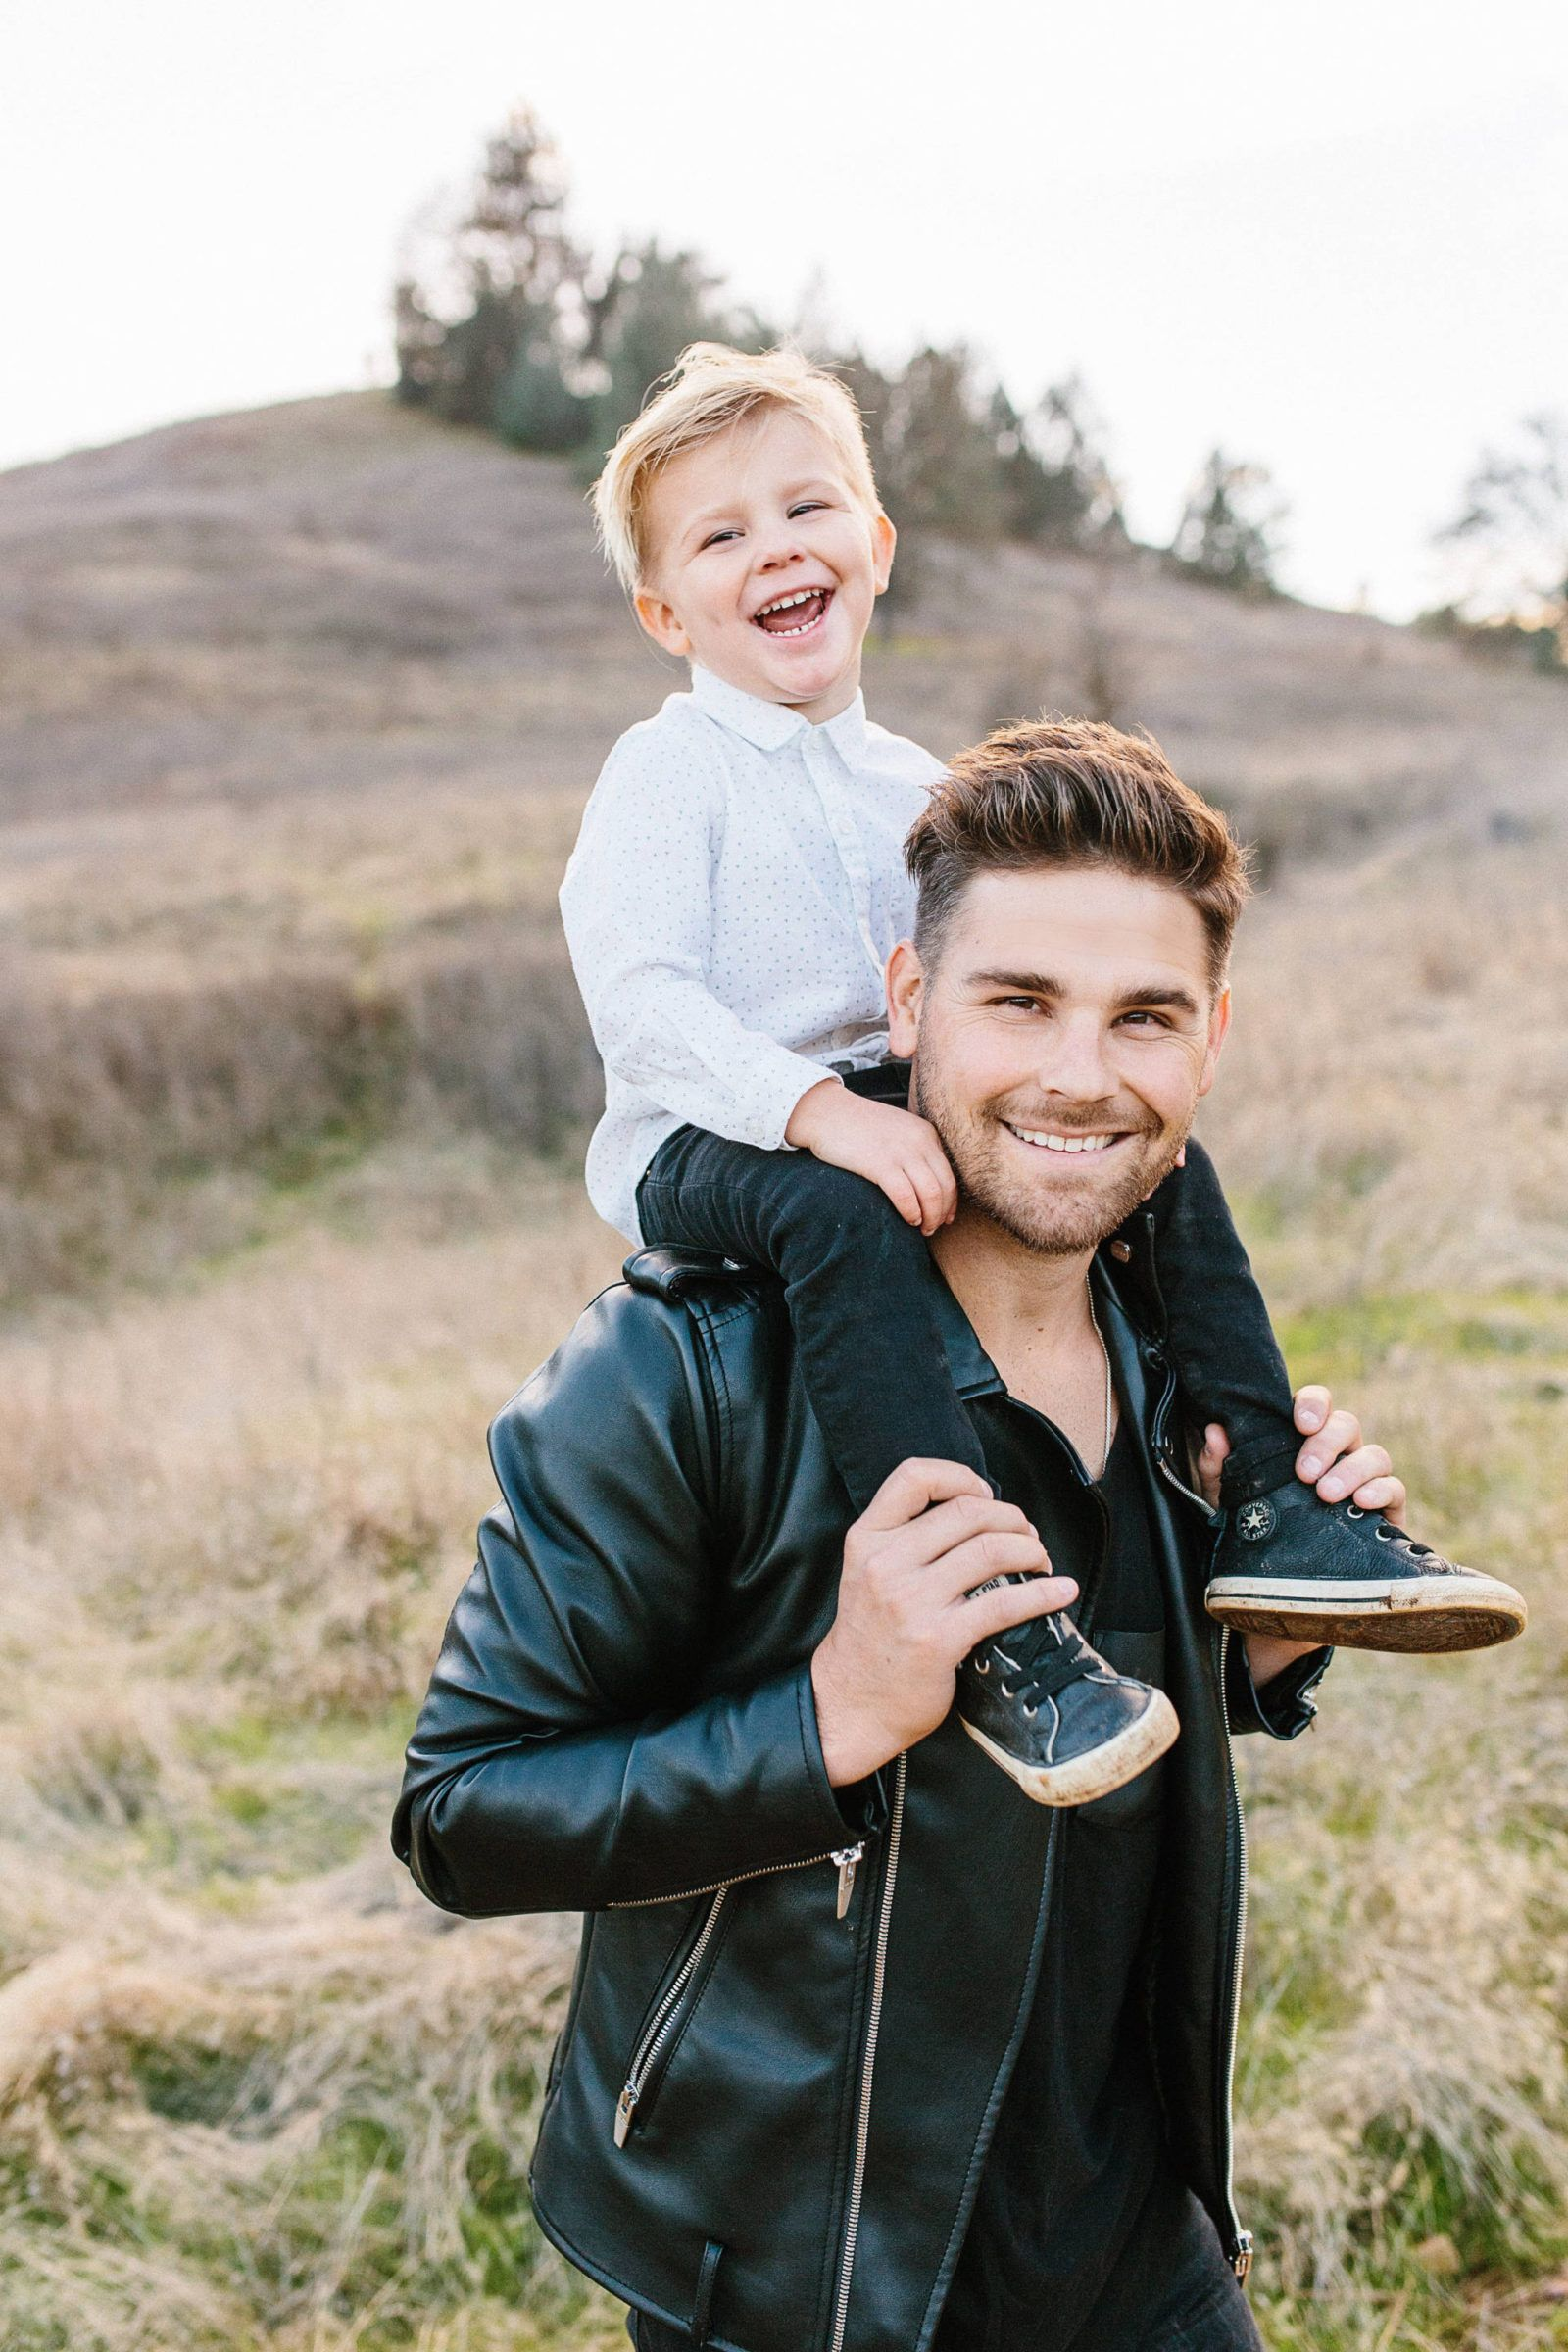 Father son christmas family card pictures photo shoot www ellabrooksblog com